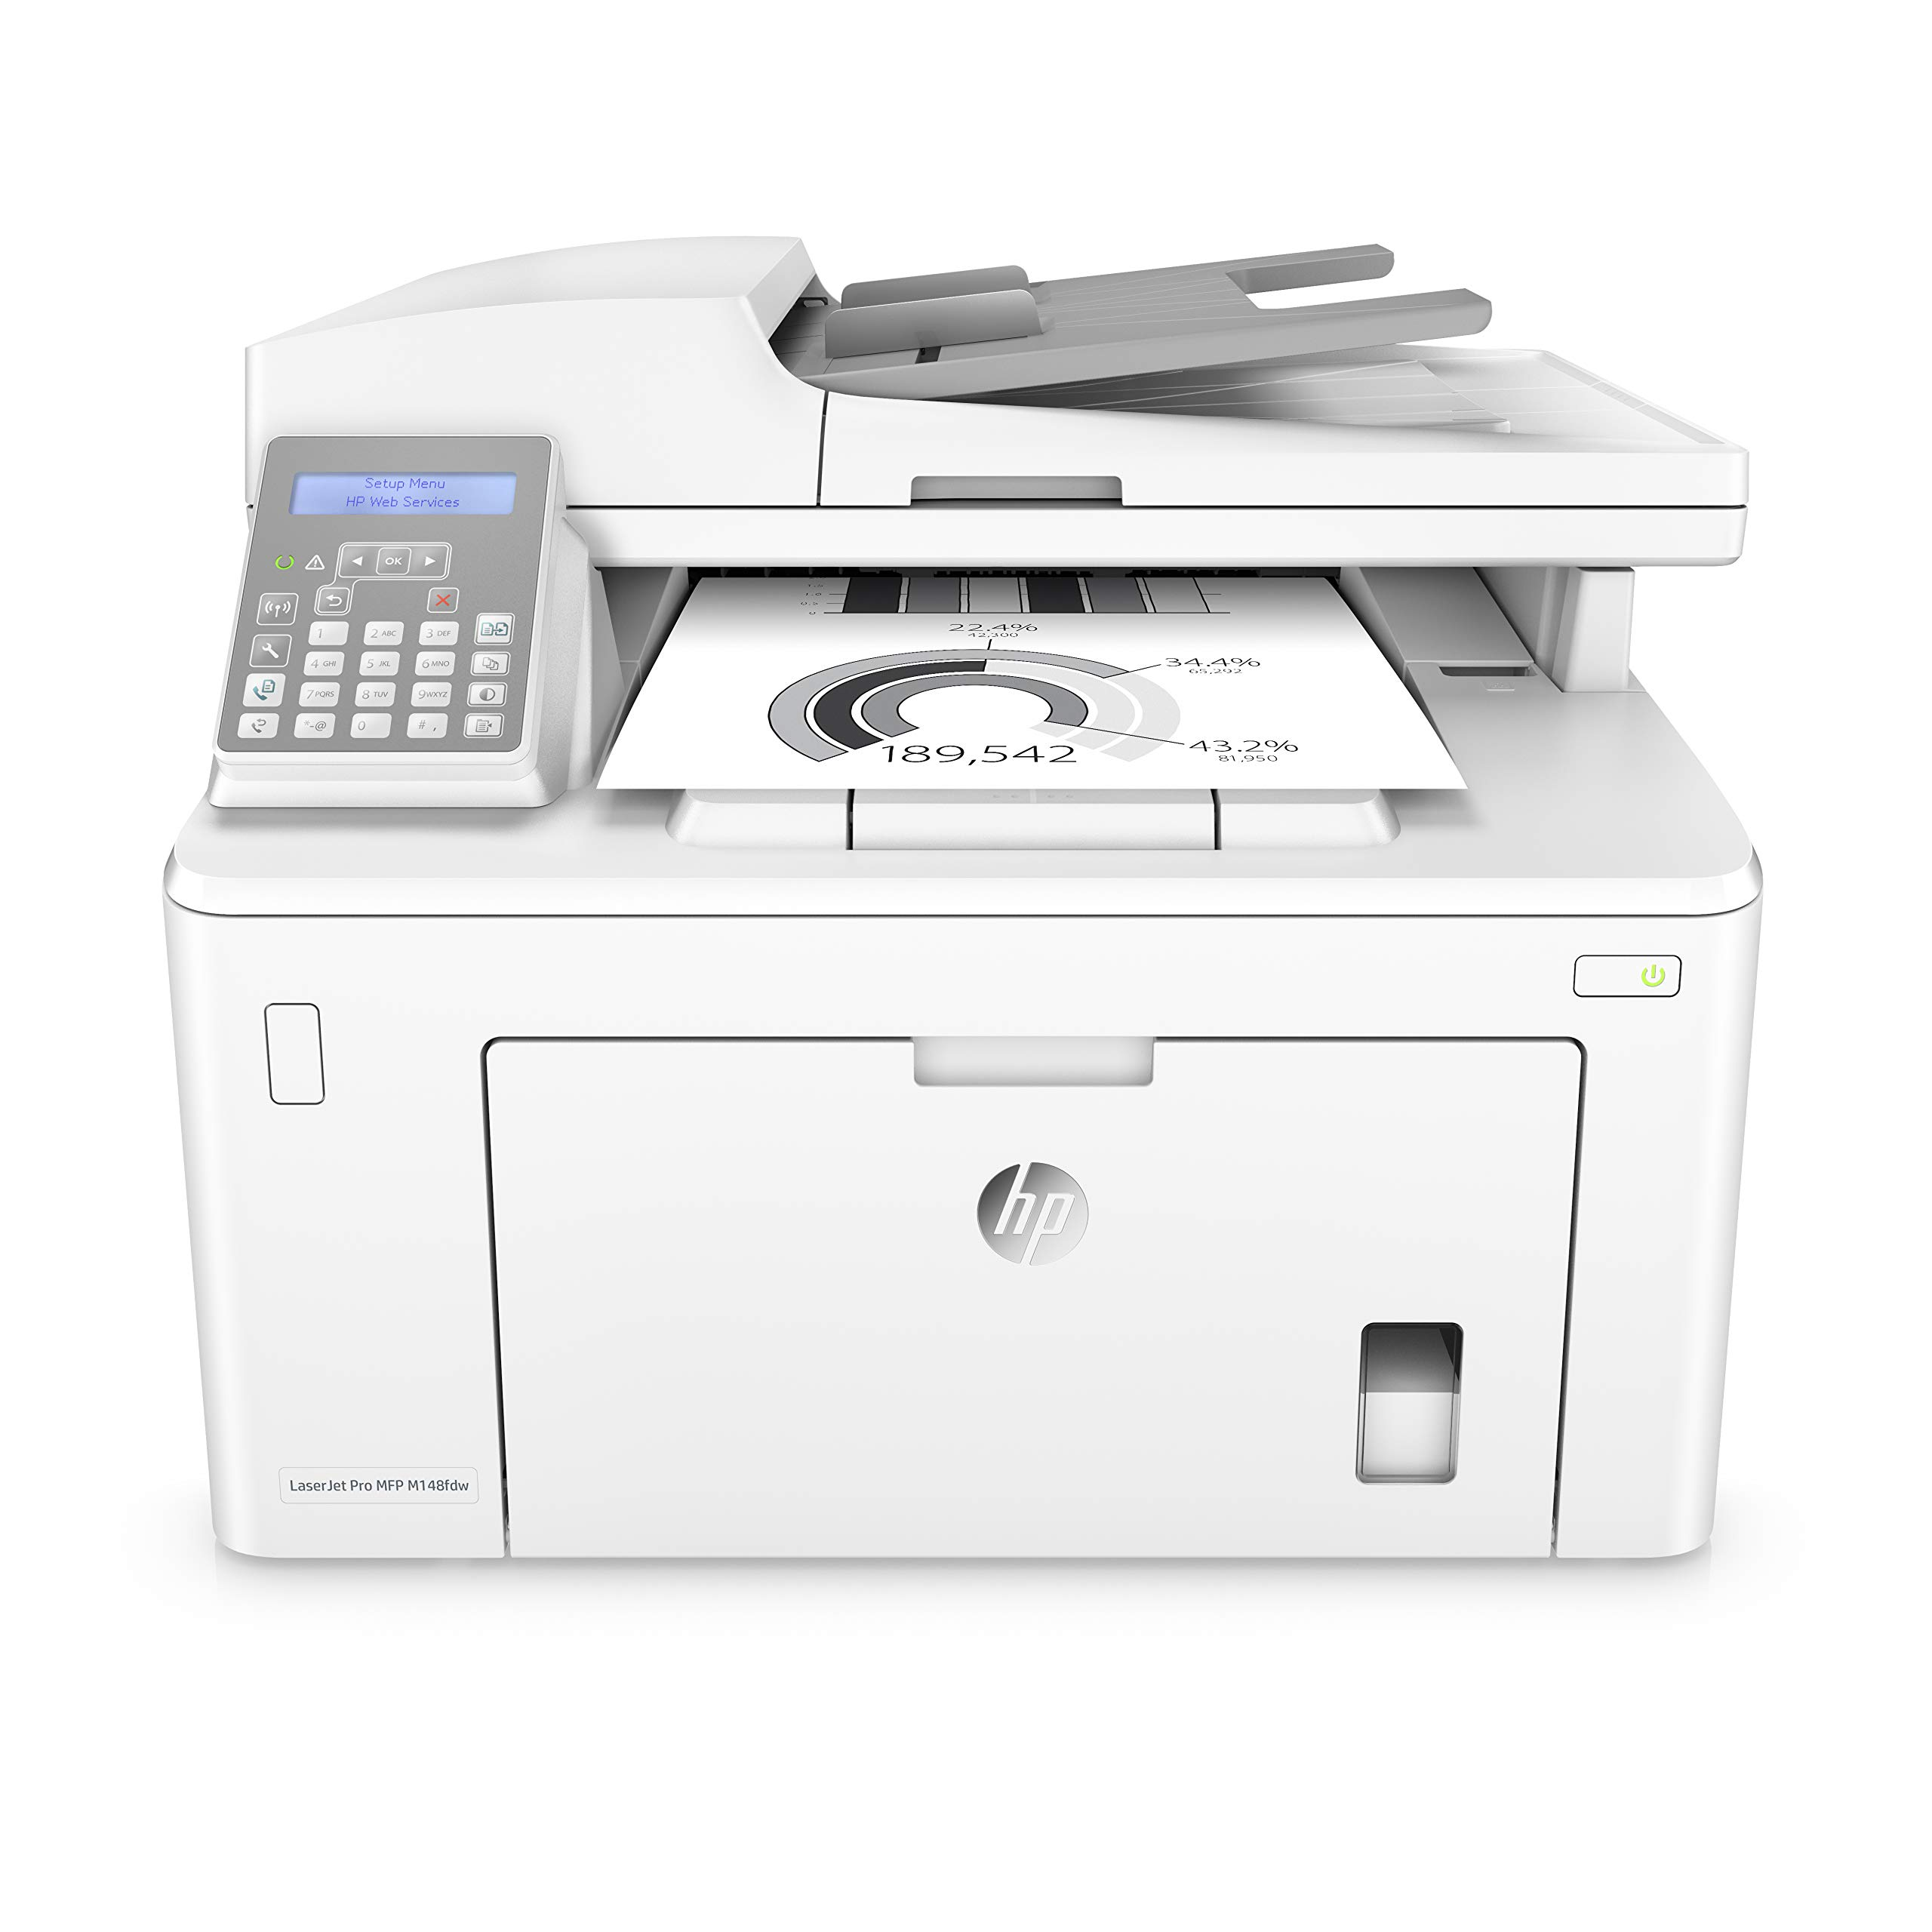 HP Laserjet Pro M148fdw All-in-One Wireless Monochrome Laser Printer with Auto Two-Sided Printing, Mobile Printing, Fax & Built-in Ethernet (4PA42A)